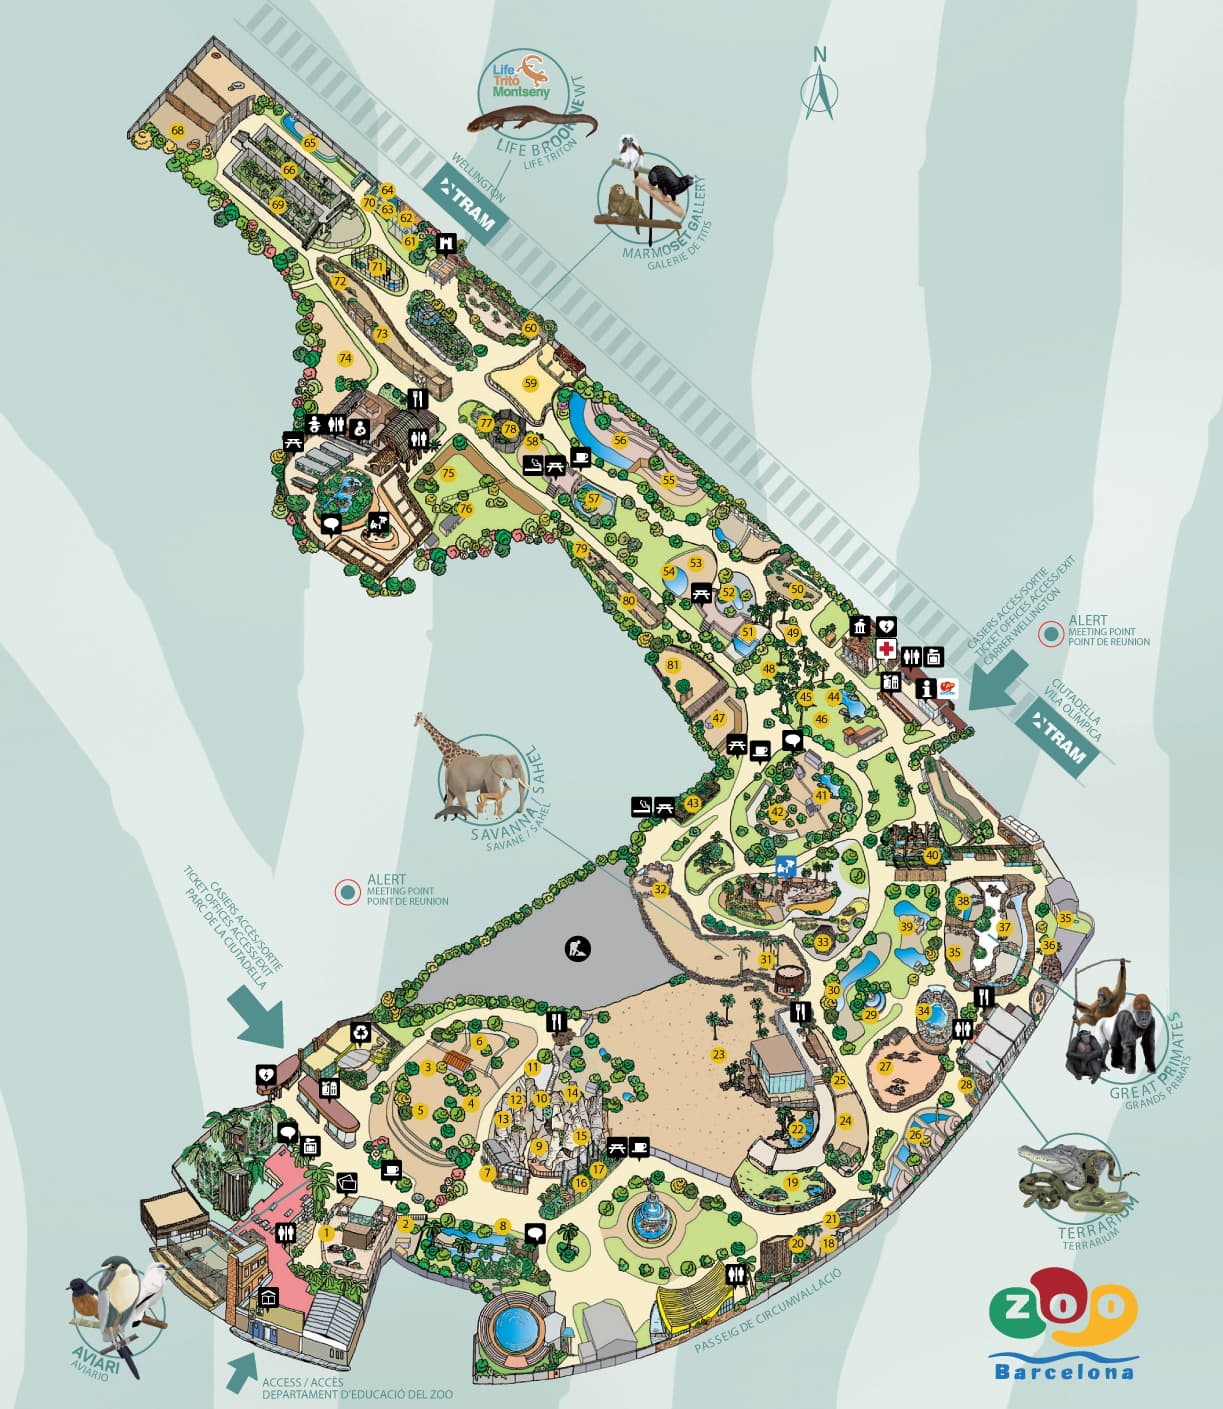 Zoo barcelona map - 2019